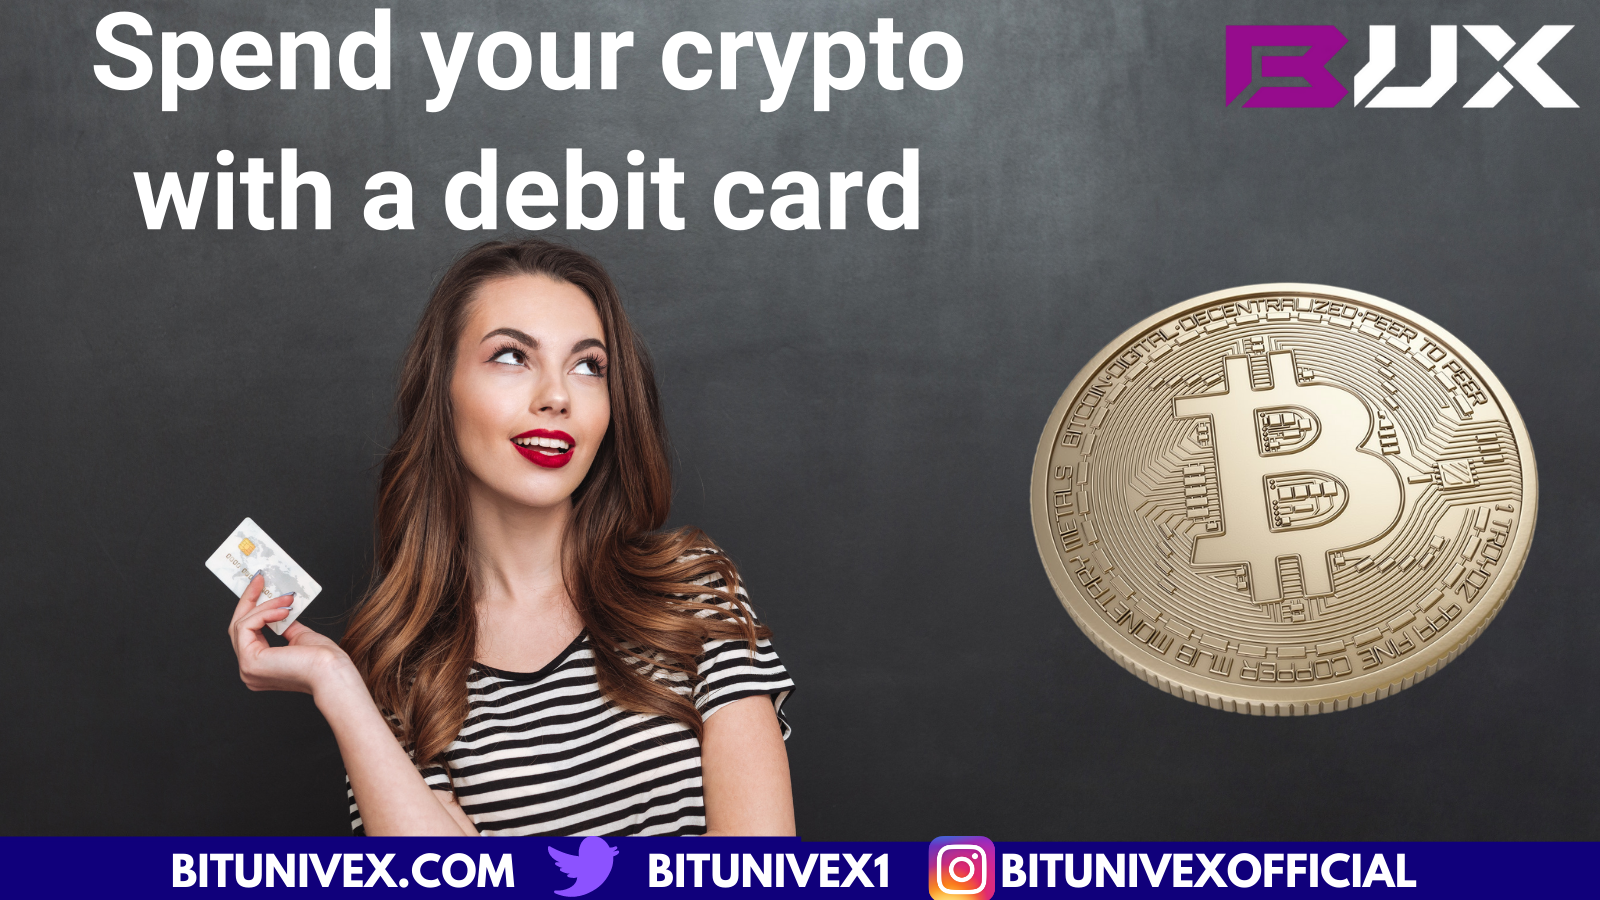 Spend your crypto with a Bitunivex Card